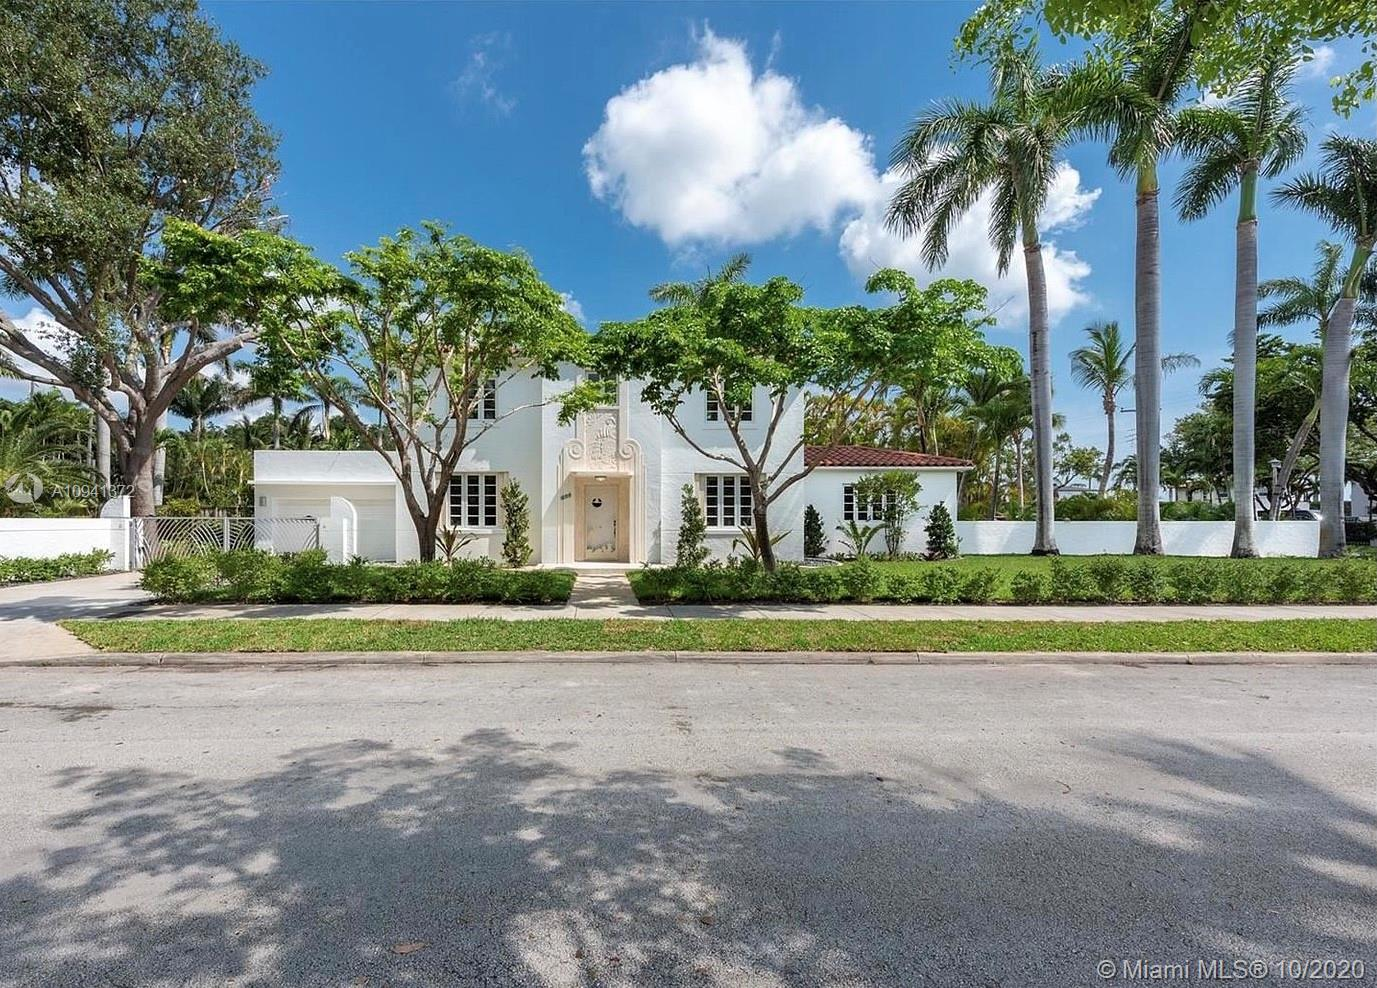 695 NE 59th St, Miami, Florida 33137, 3 Bedrooms Bedrooms, ,3 BathroomsBathrooms,Residential,For Sale,695 NE 59th St,A10941372